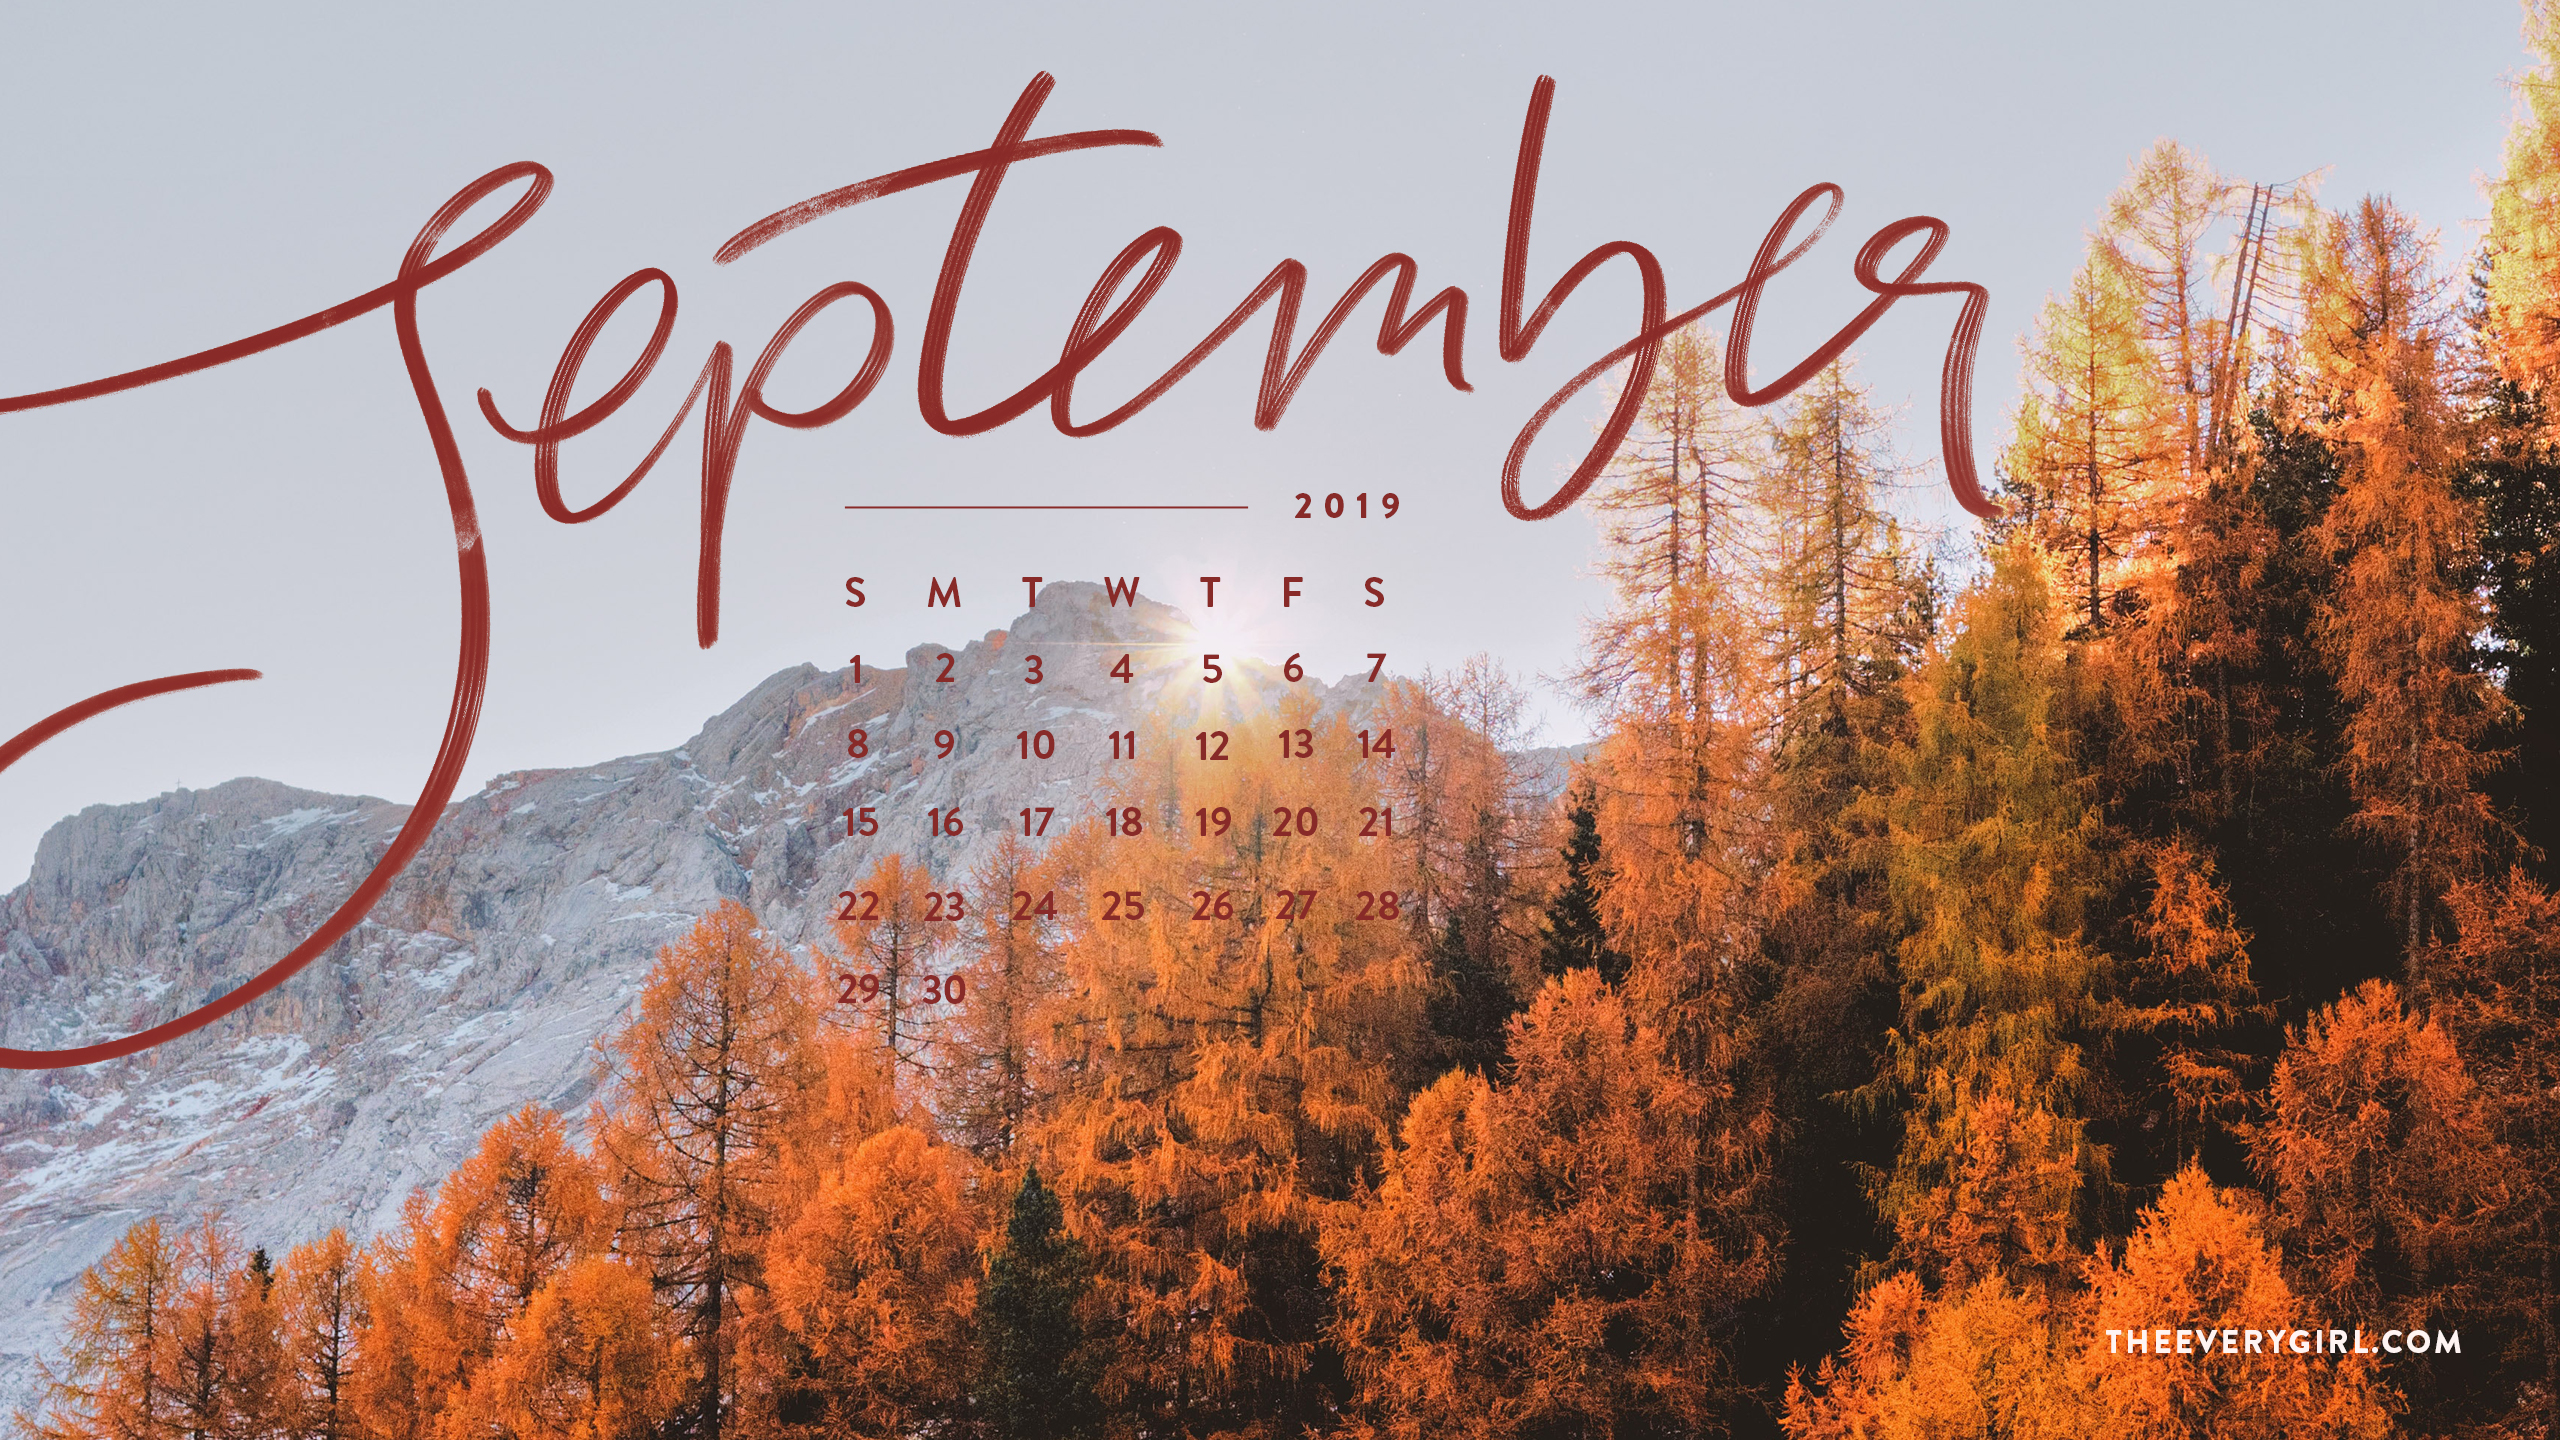 Free Downloadable Tech Backgrounds For September 2019 The Everygirl